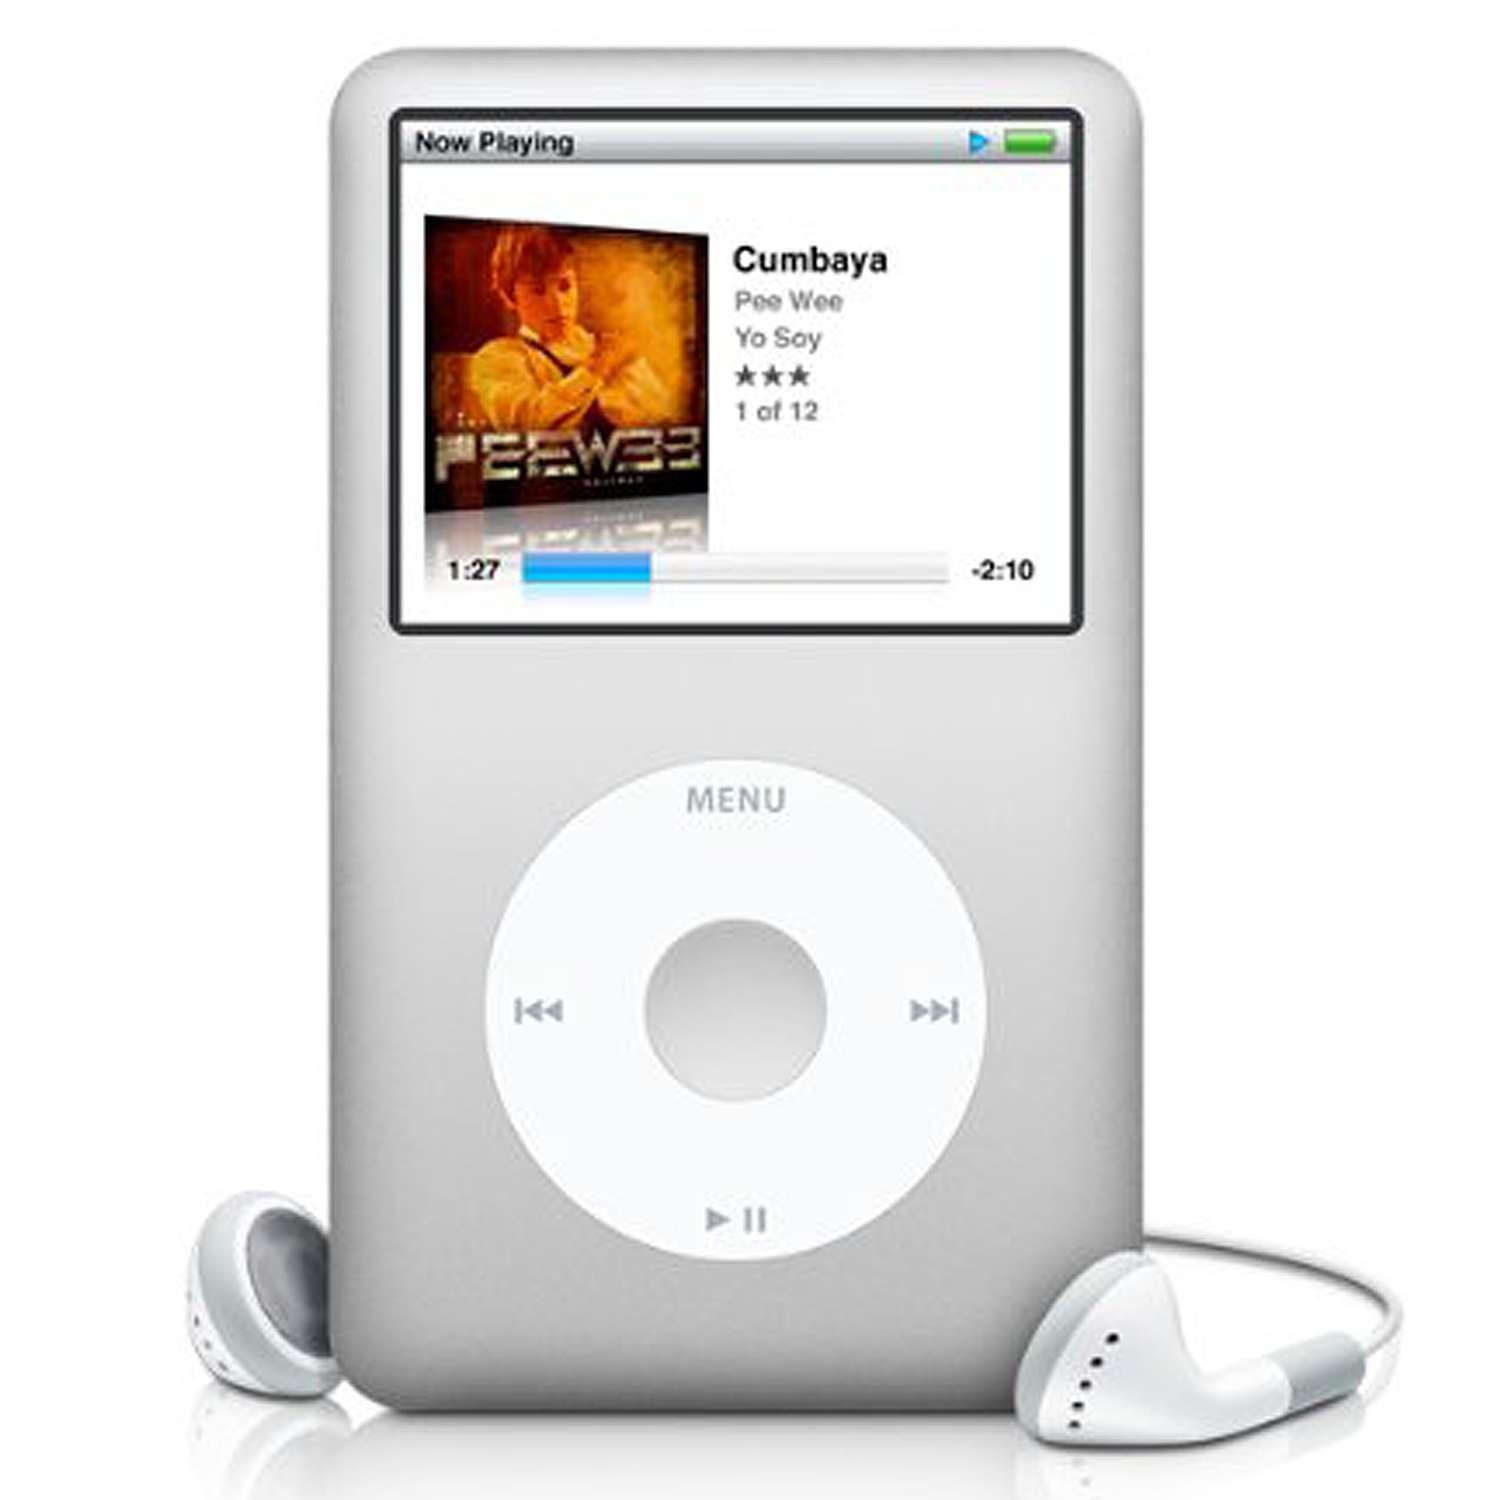 how to know which ipod i have